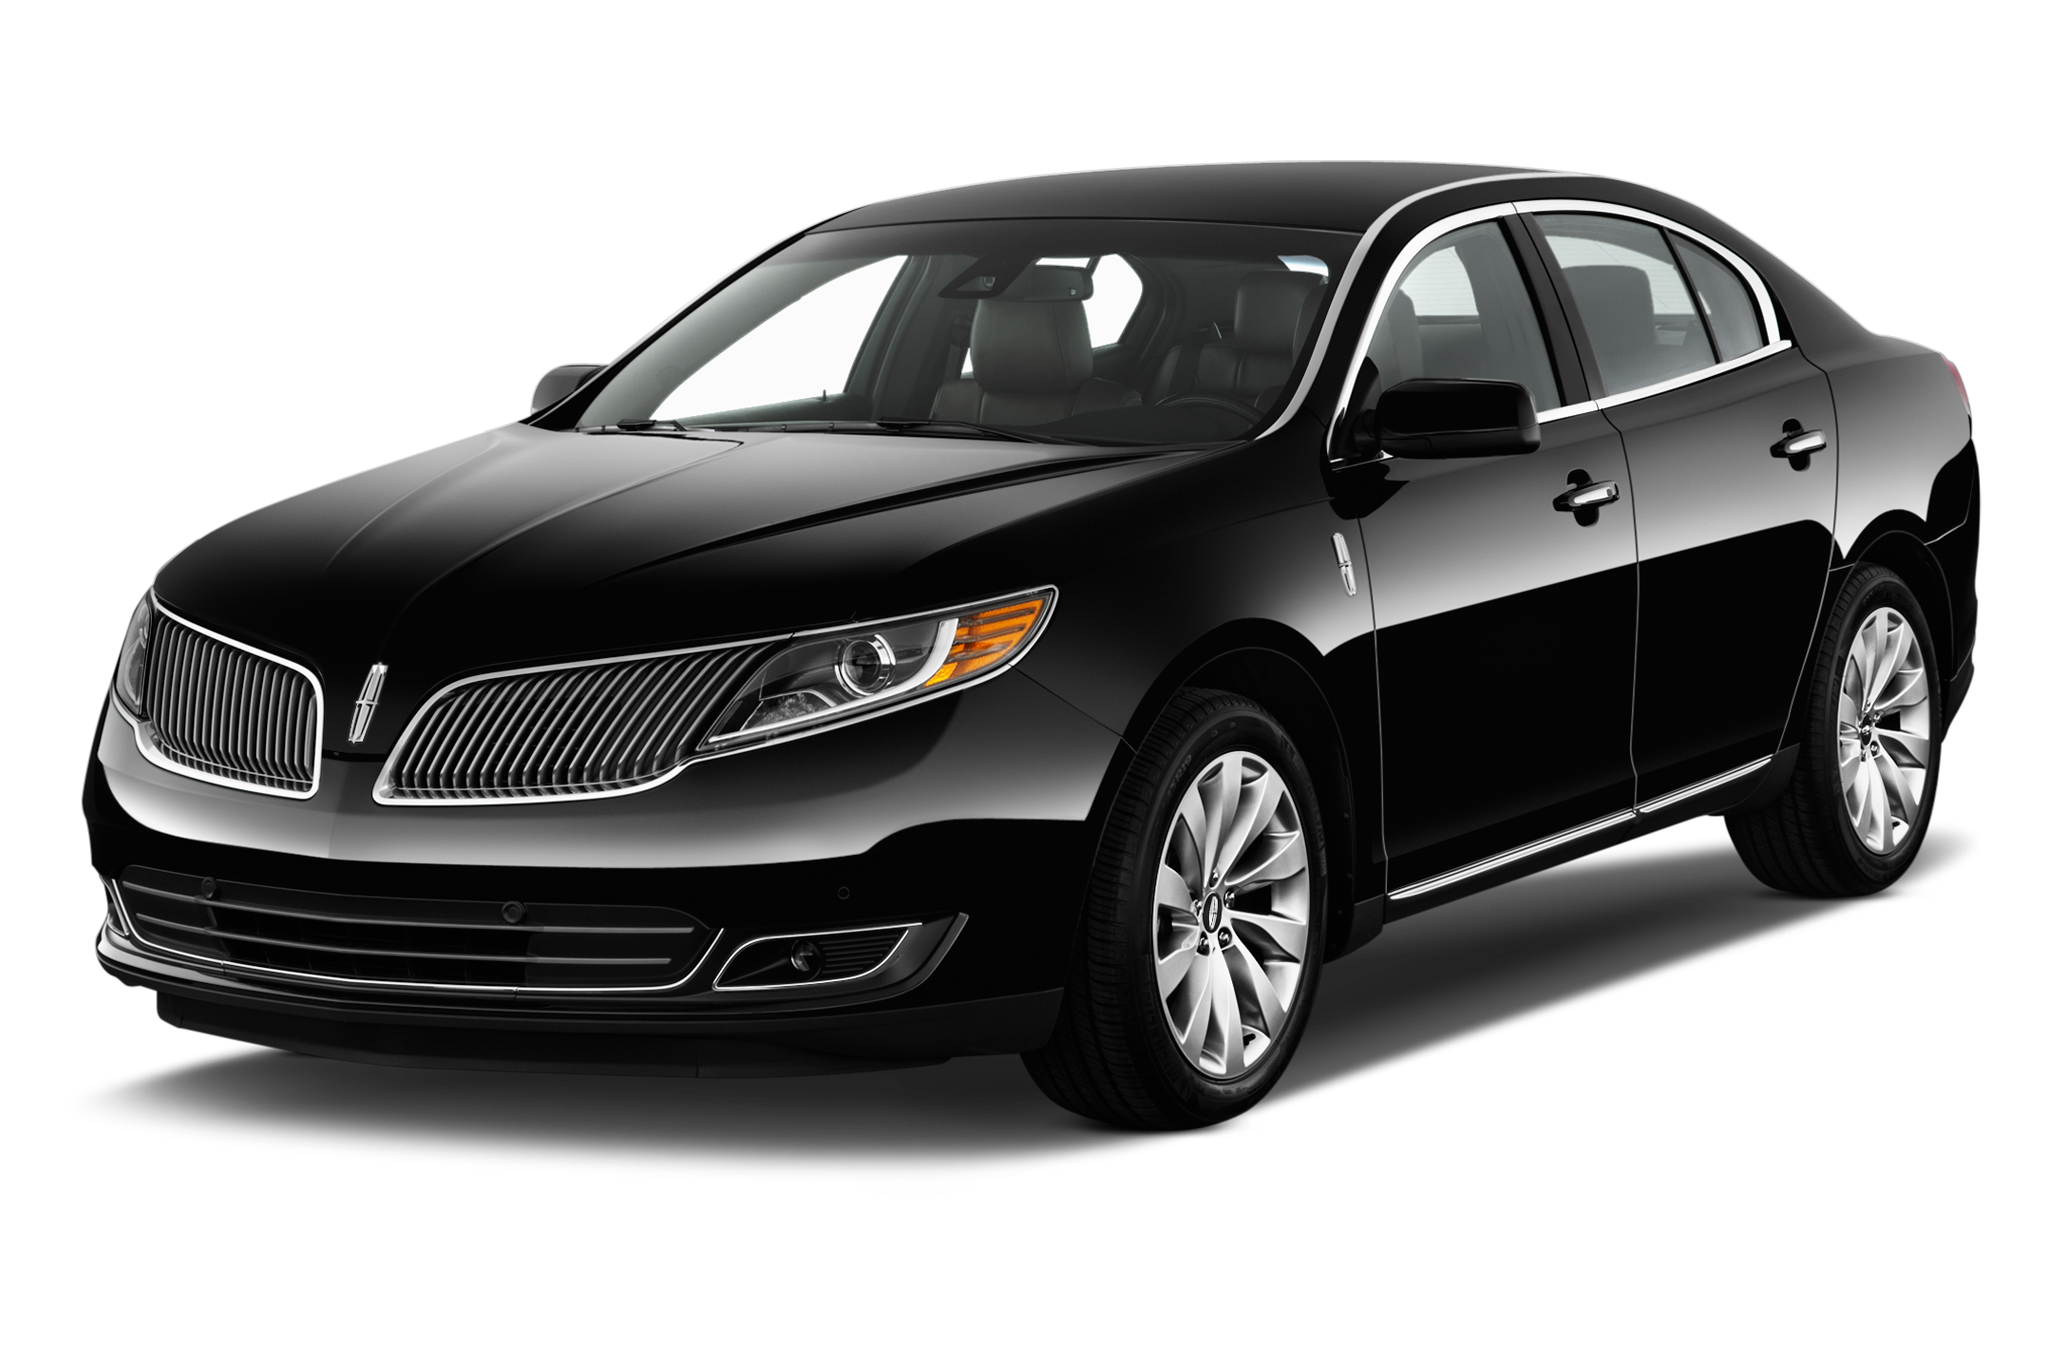 mtl_limo_lincoln_2.png